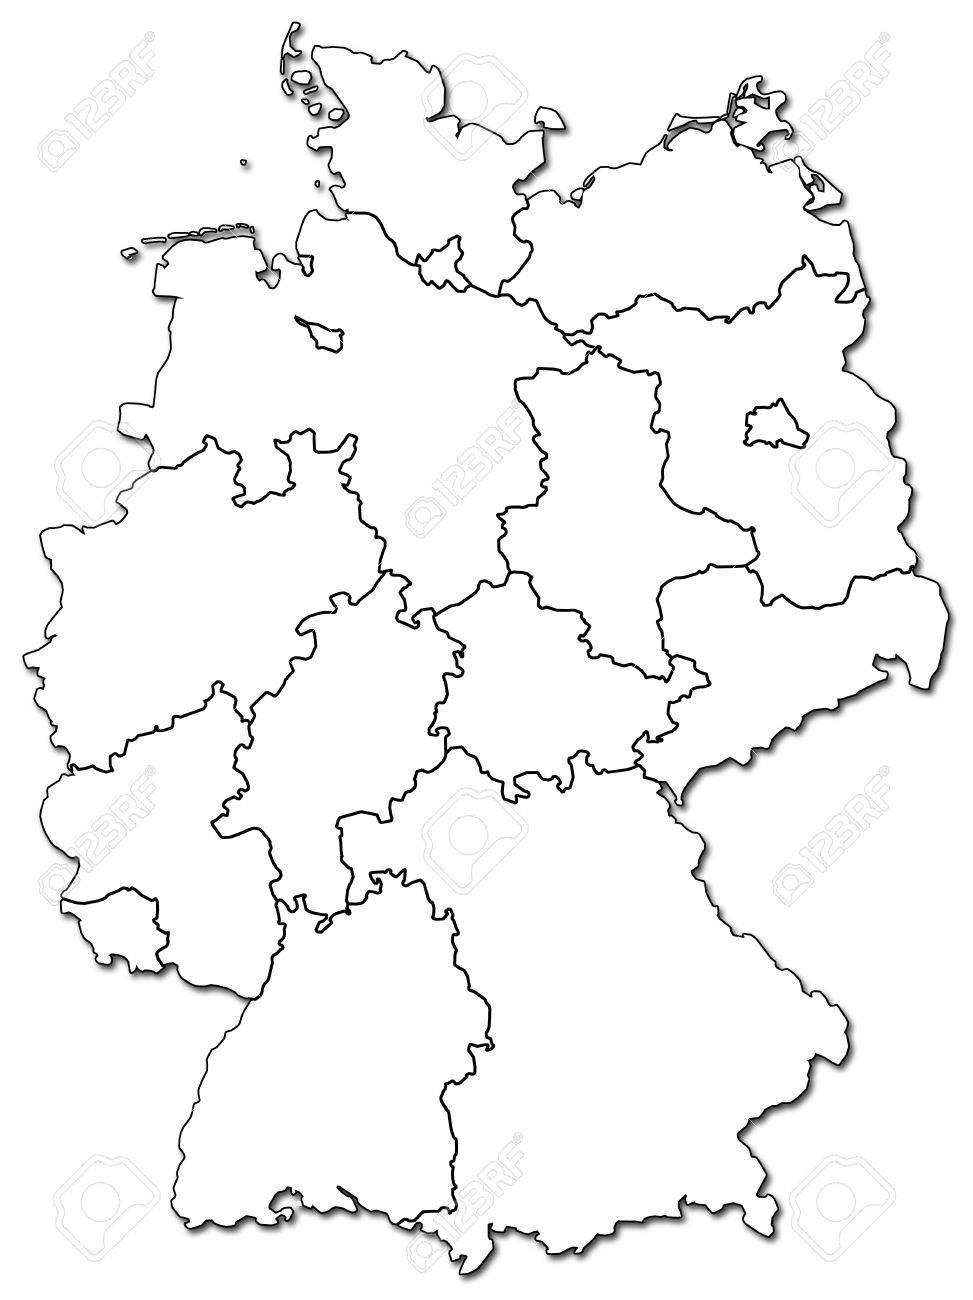 Germany Provinces Map The Bcg Growthshare Matrix - Germany map provinces